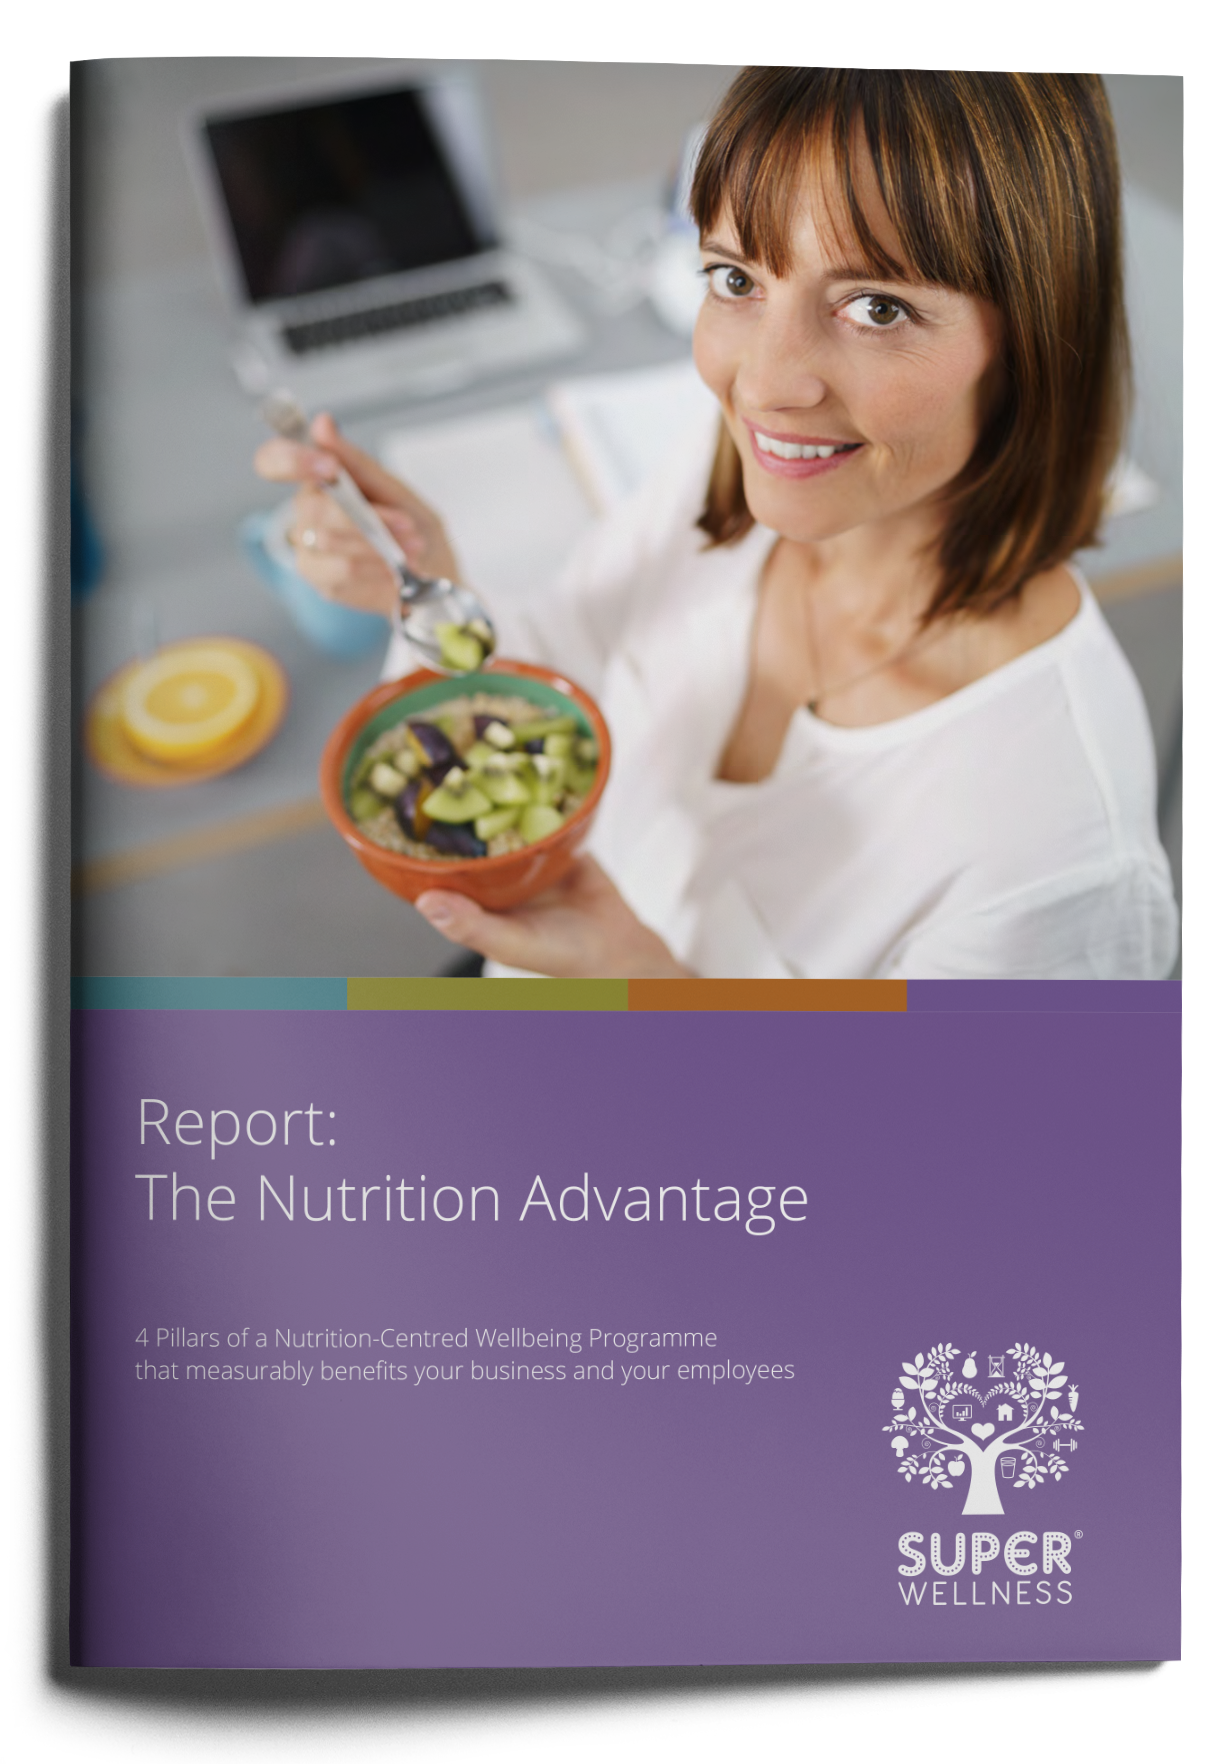 Employee wellbeing and the nutrition advantage